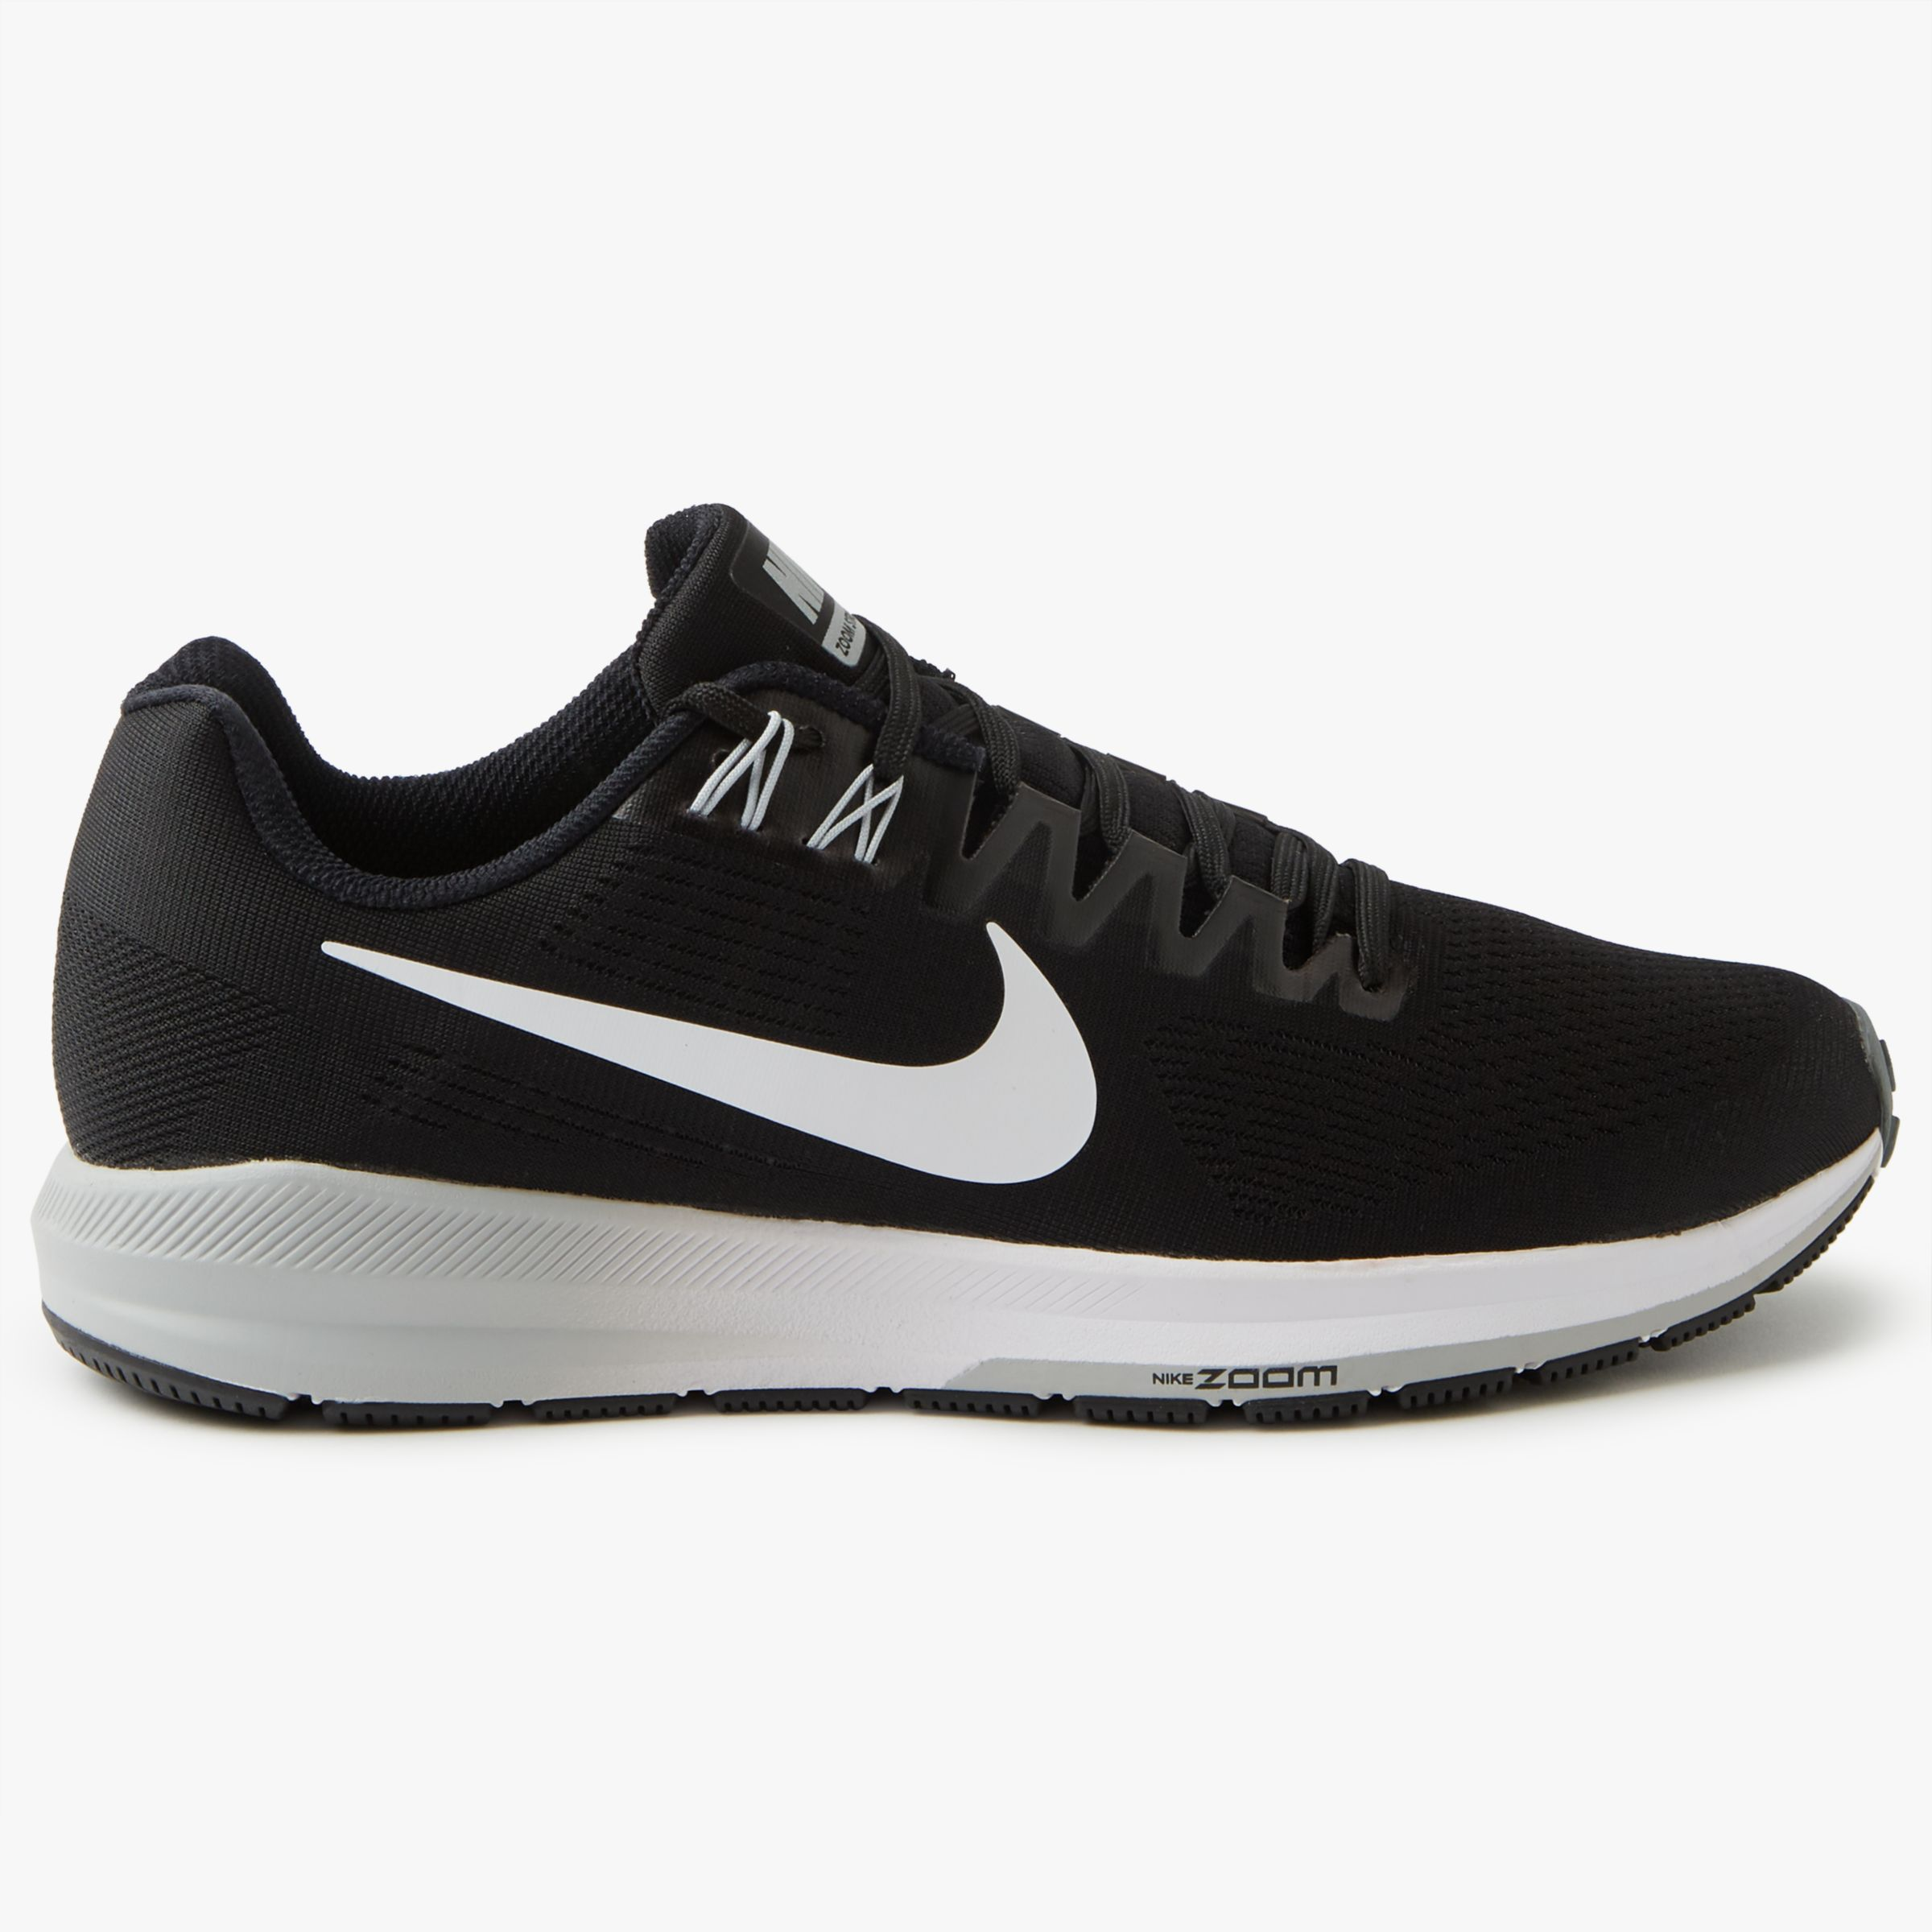 823ab4483a20 Nike Air Zoom Structure 21 Men s Running Shoes